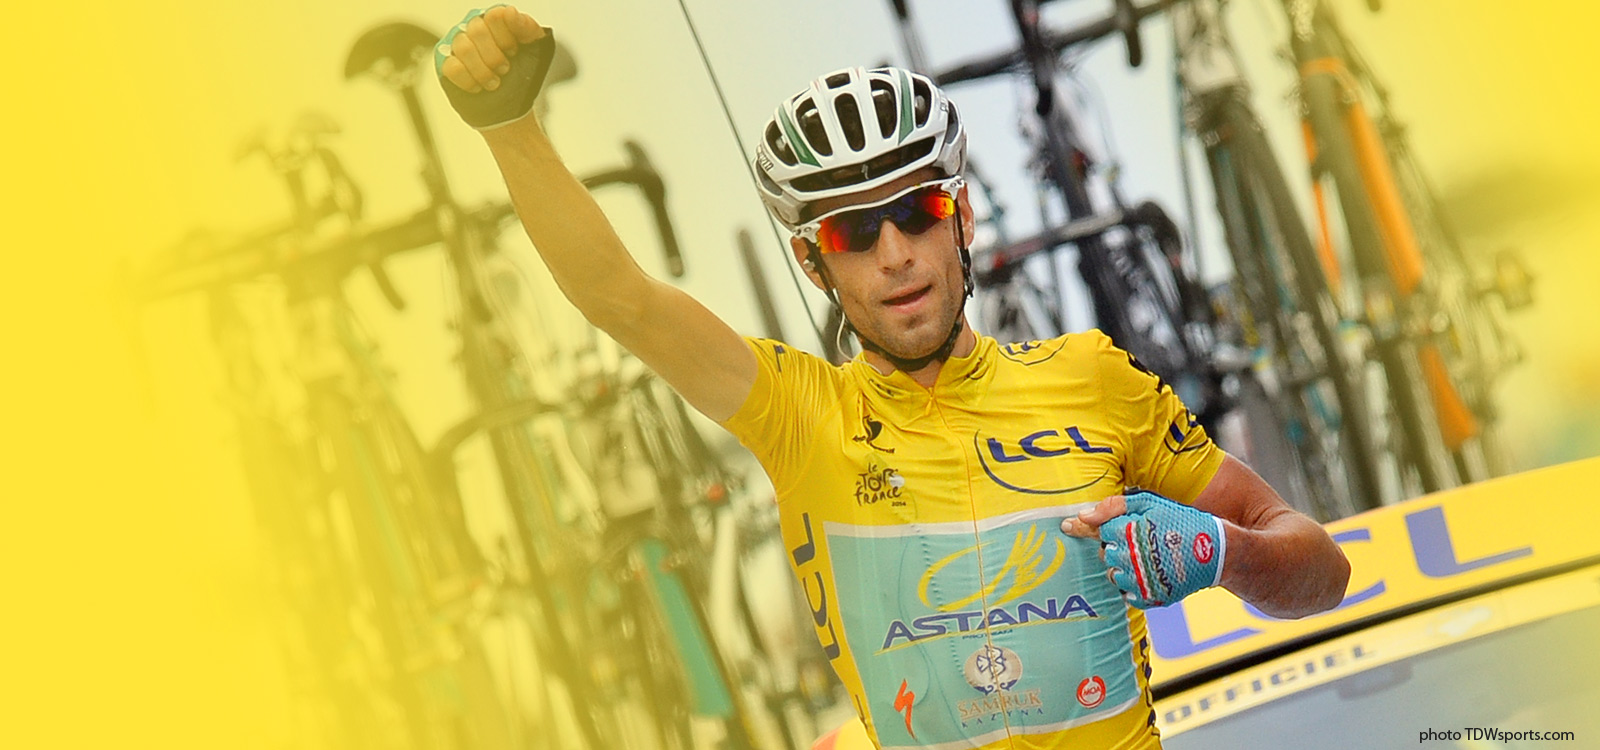 Nibali vince la seconda tappa del Tour de France 2014